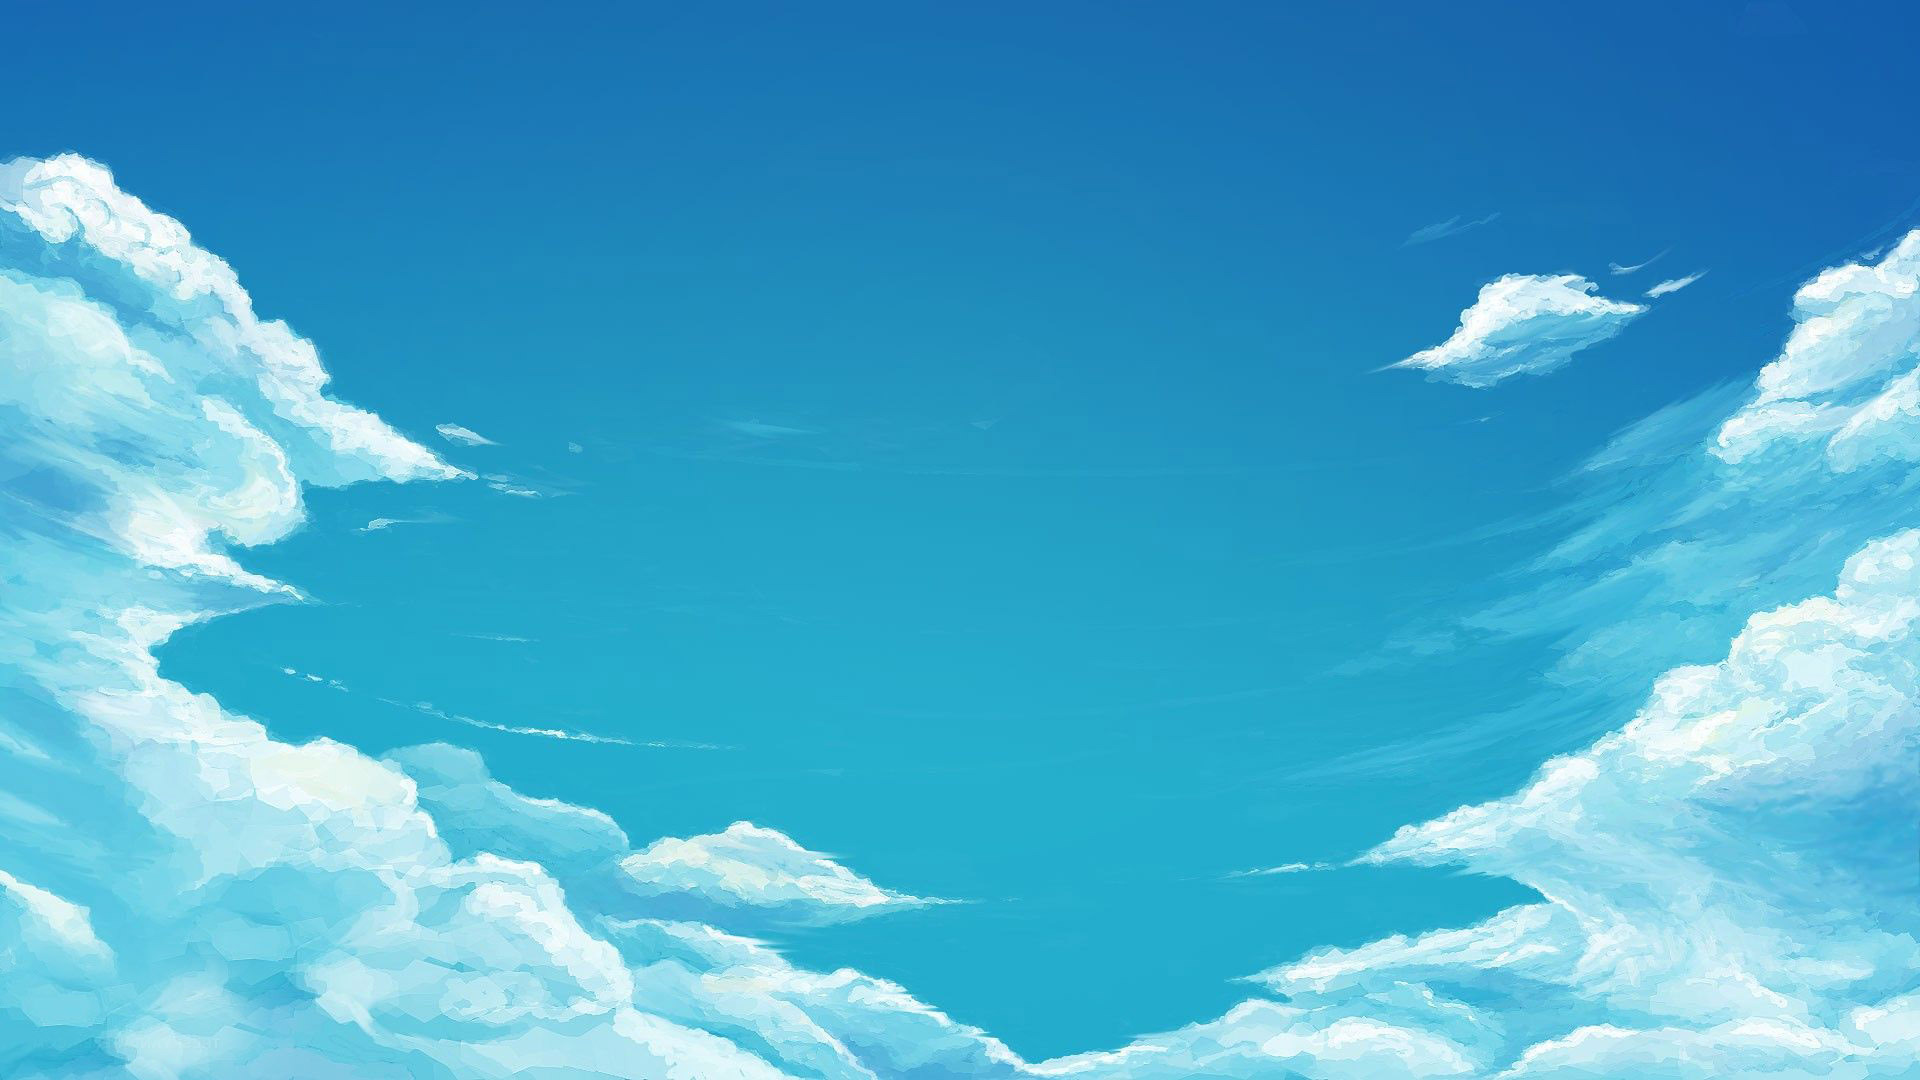 Blue sky wallpaper 14366 1920x1080